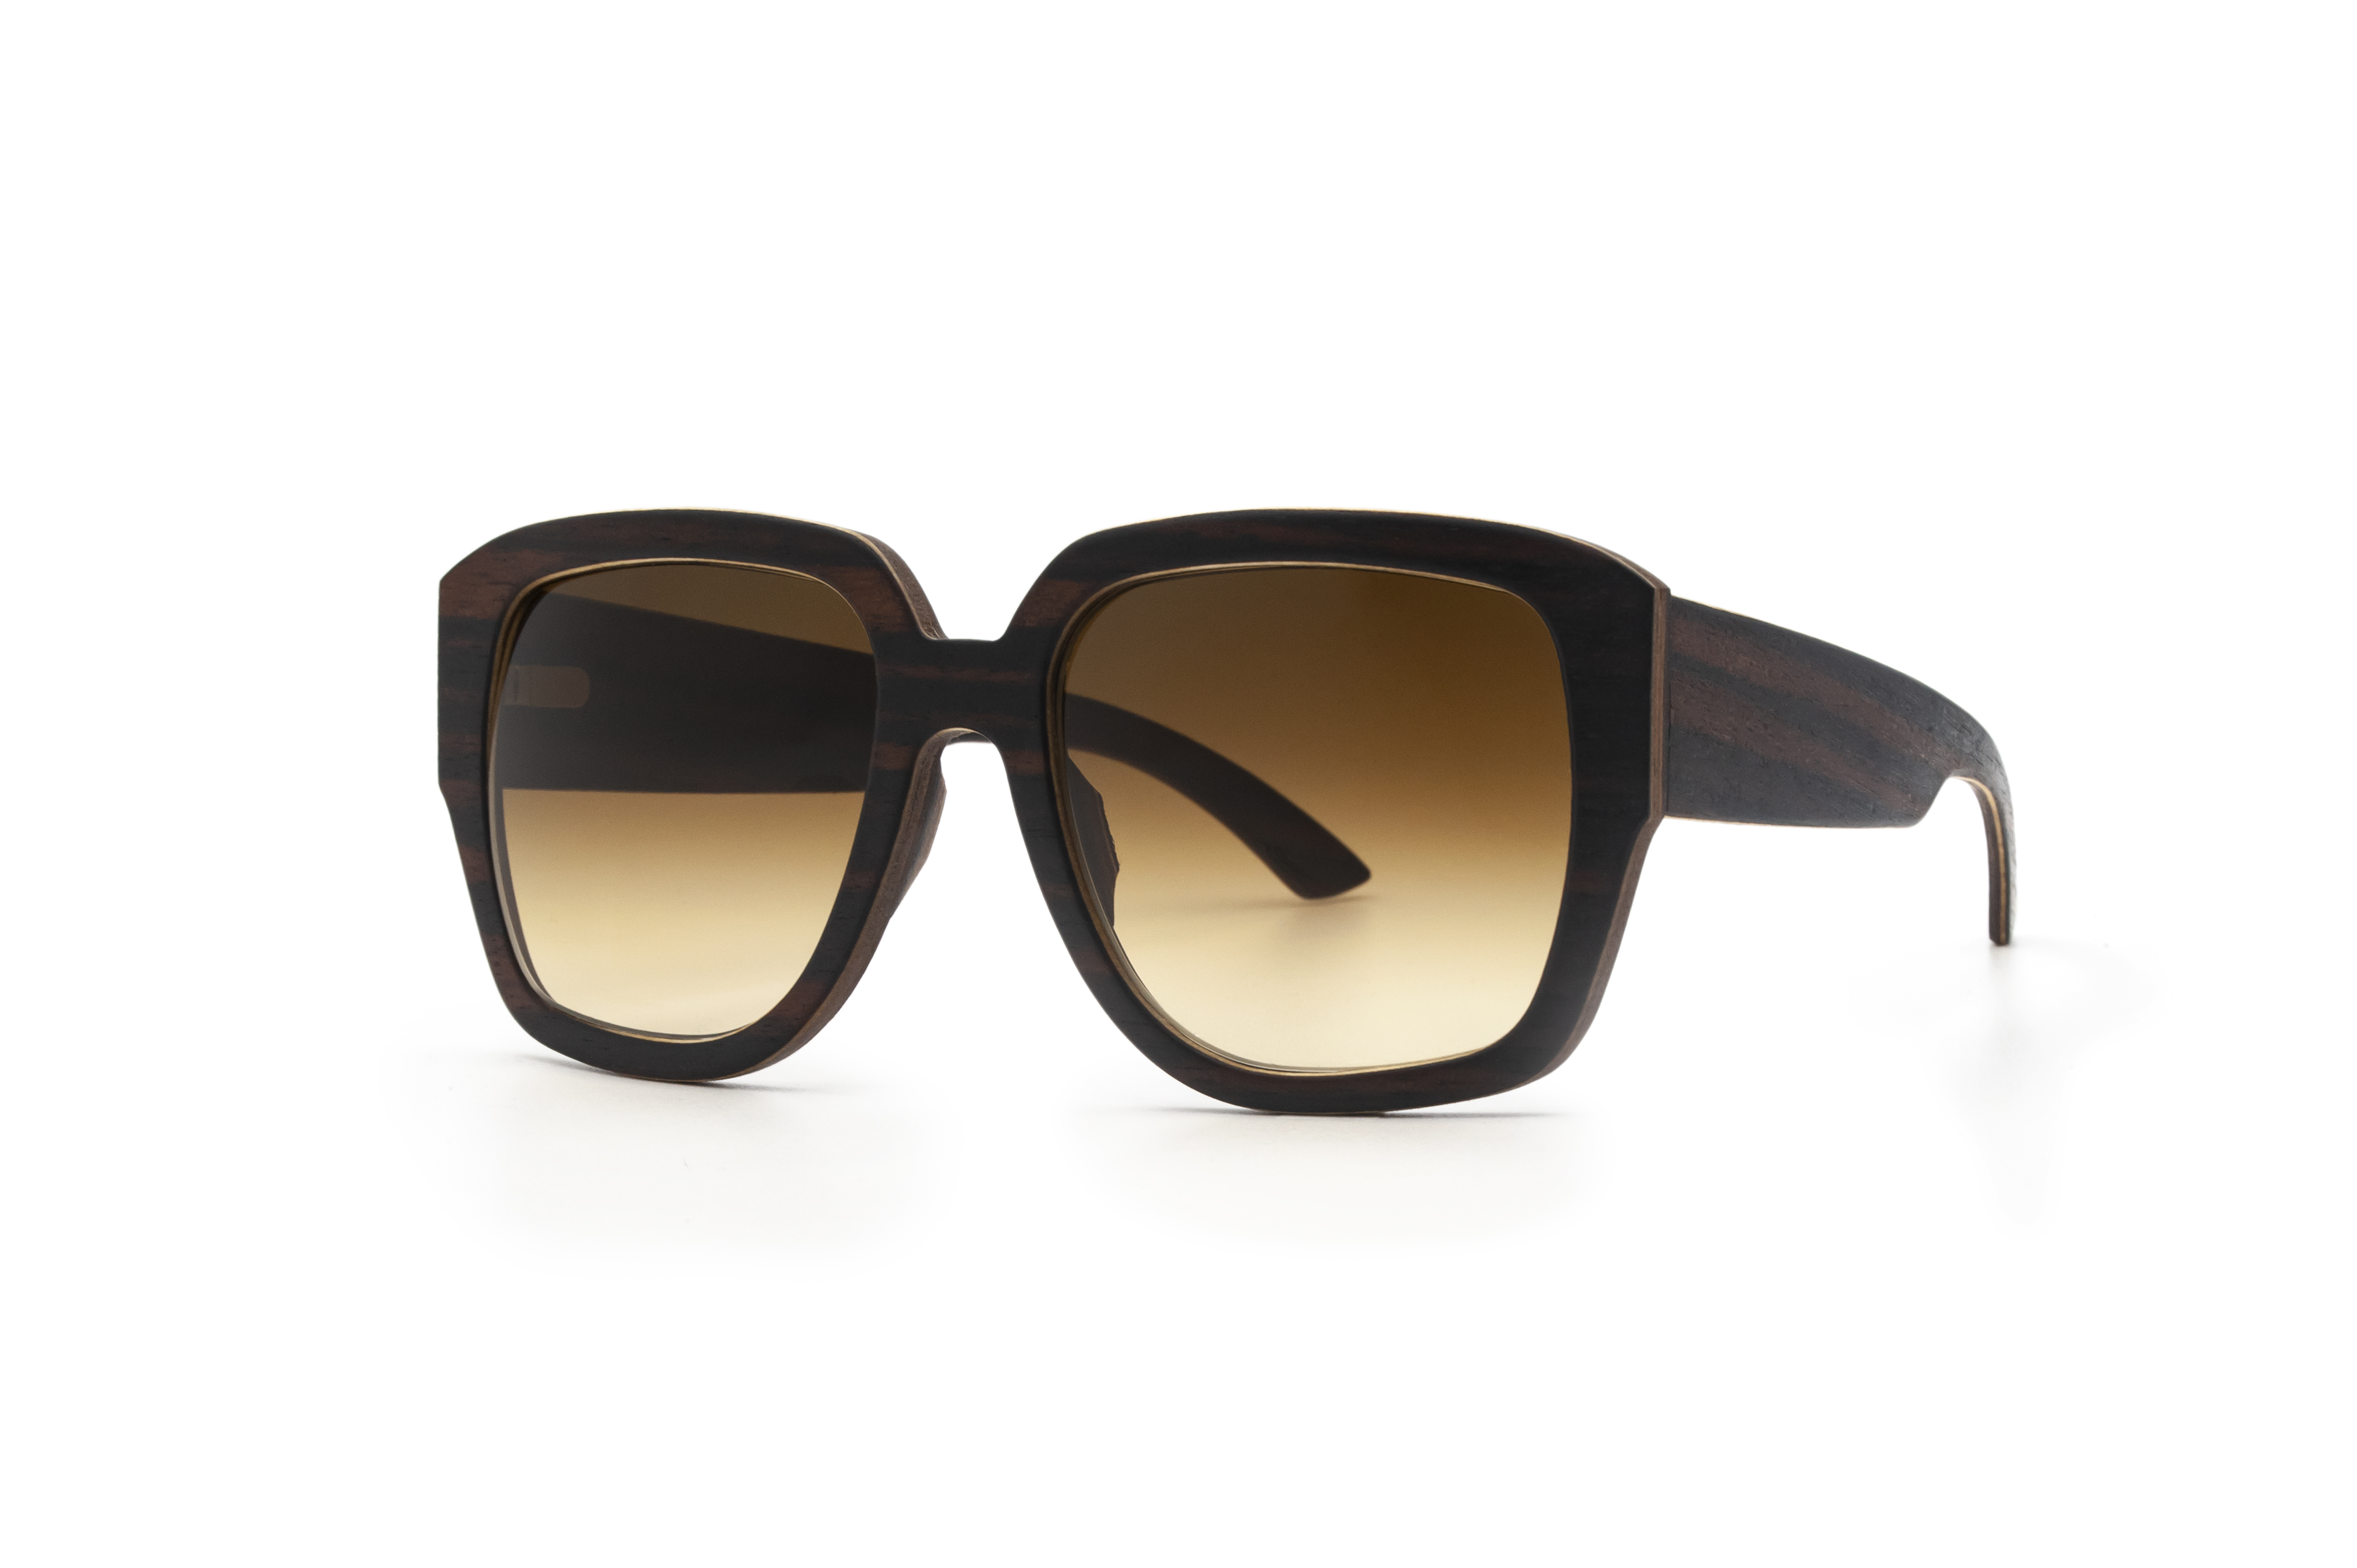 Angus Black Square Sunglasses Wooden Sunglasses